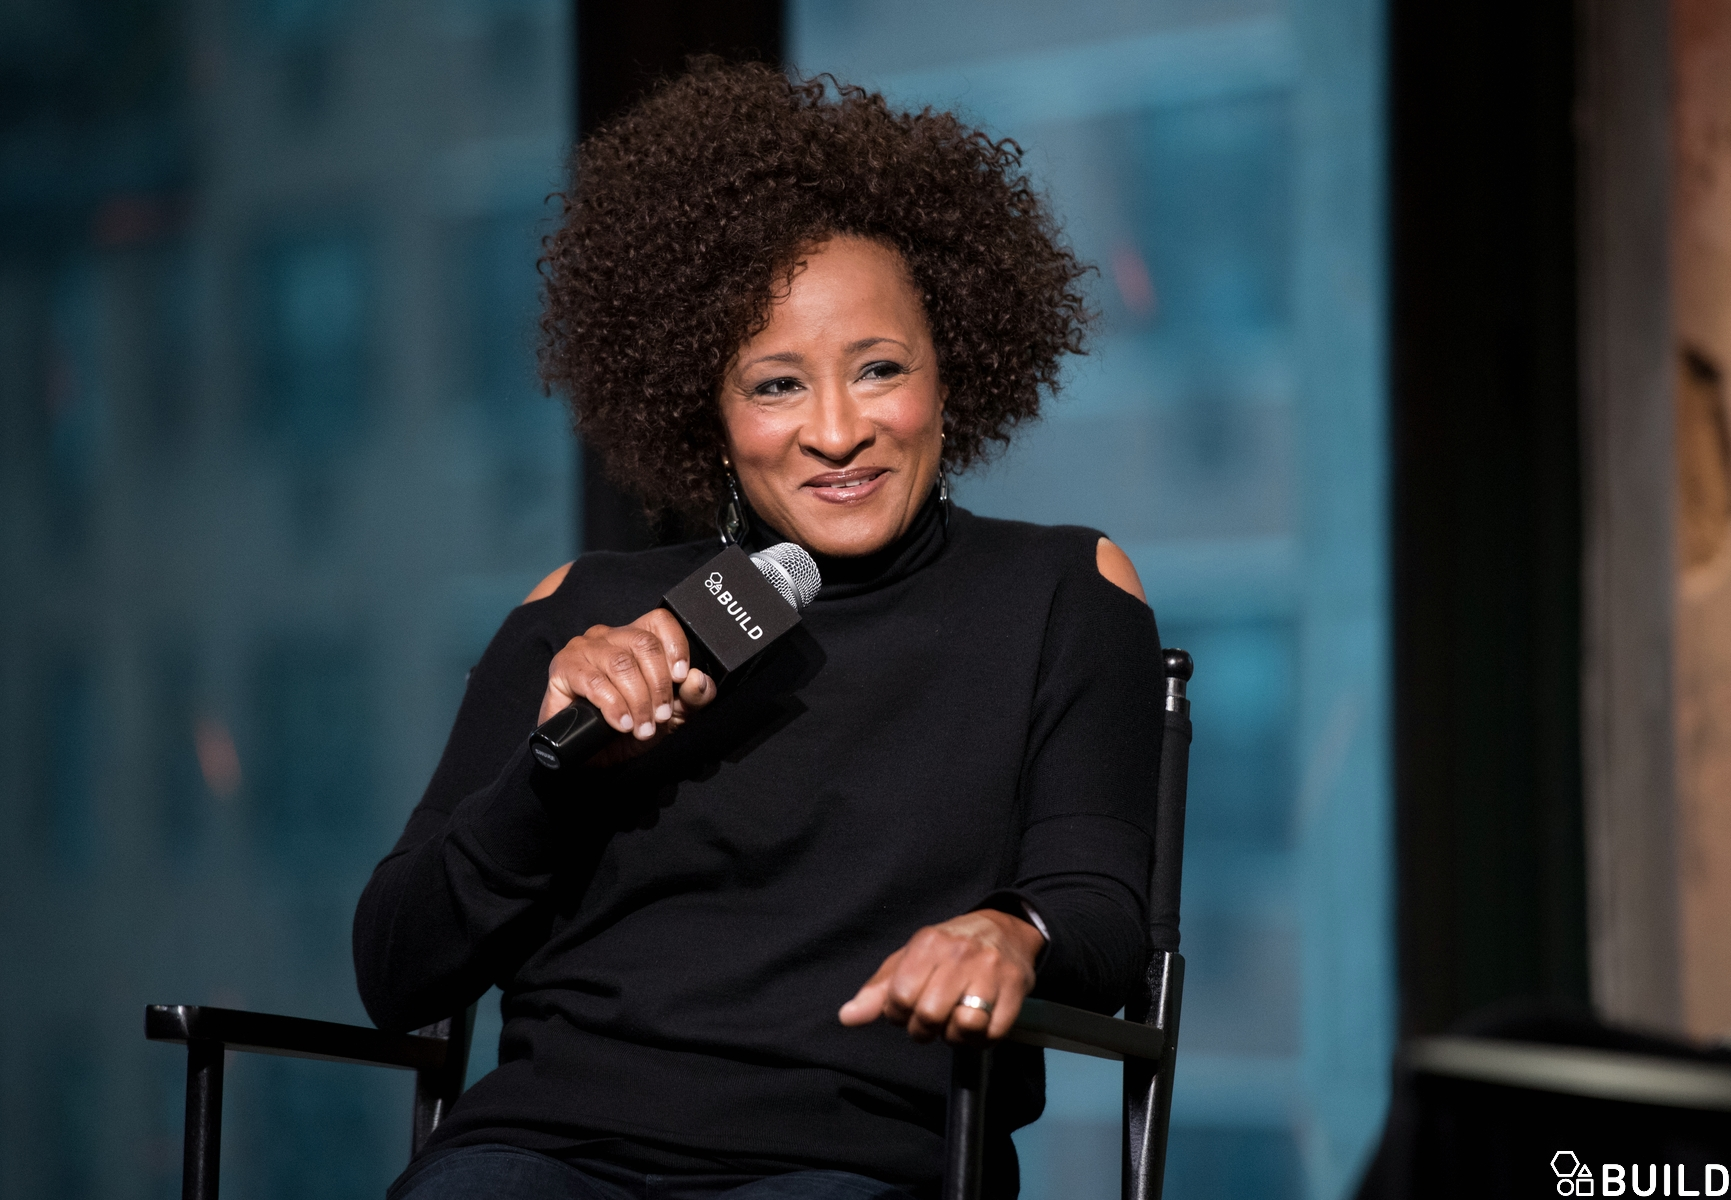 Wanda Sykes visits AOL Hq for Build on April 13, 2016 in New York. Photos by Noam Galai